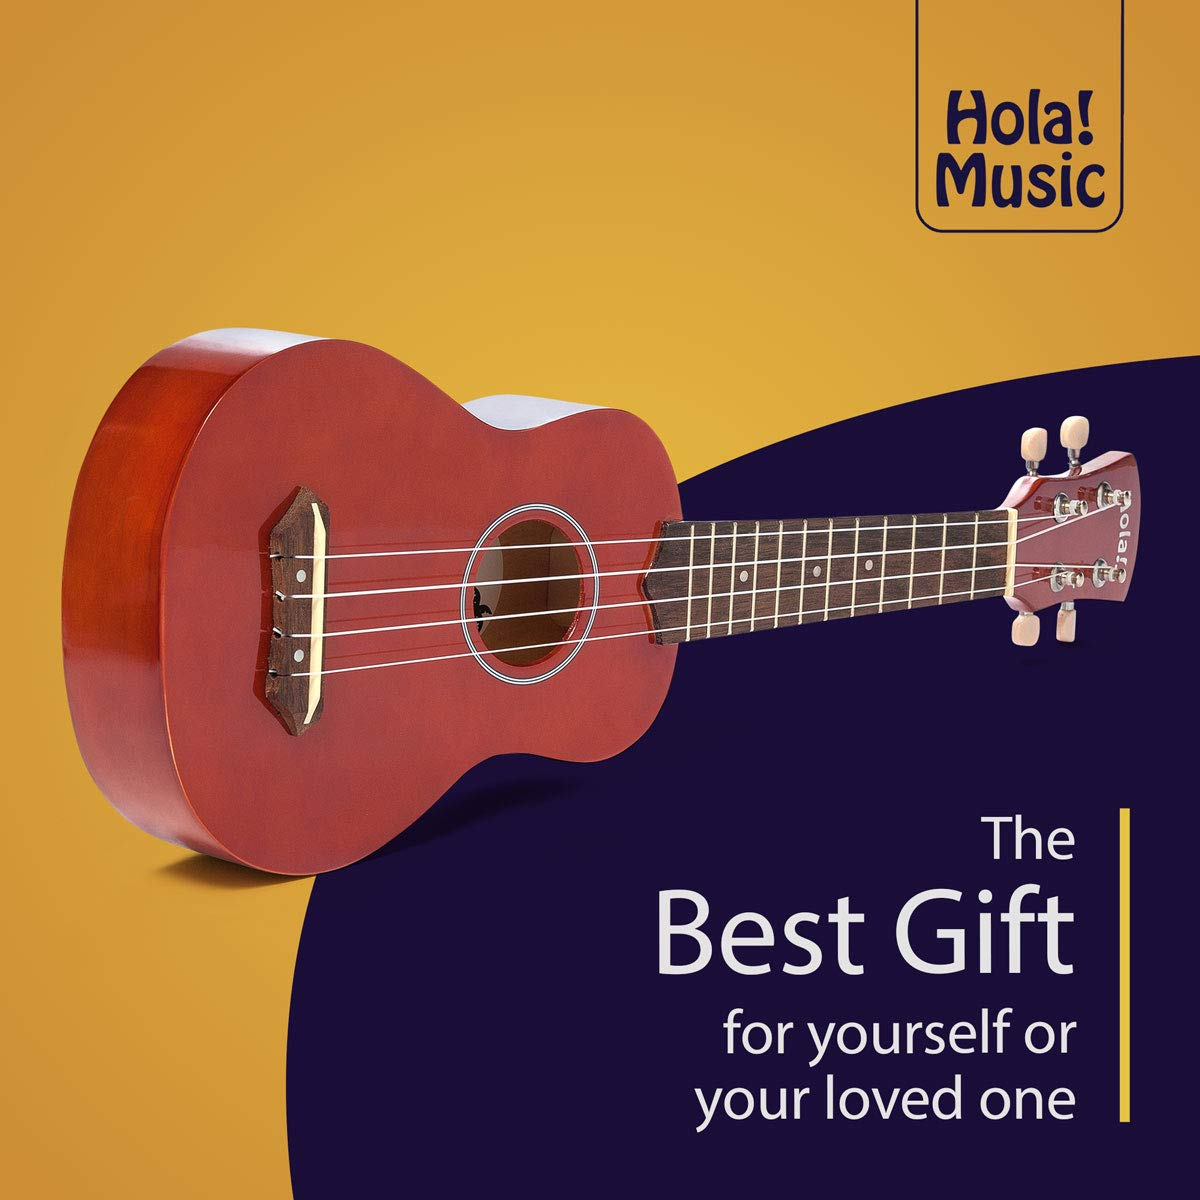 Hola! Music HM-21MG Soprano Ukulele Bundle with Canvas Tote Bag, Strap and Picks, Color Series - Mahogany by Hola! Music (Image #4)